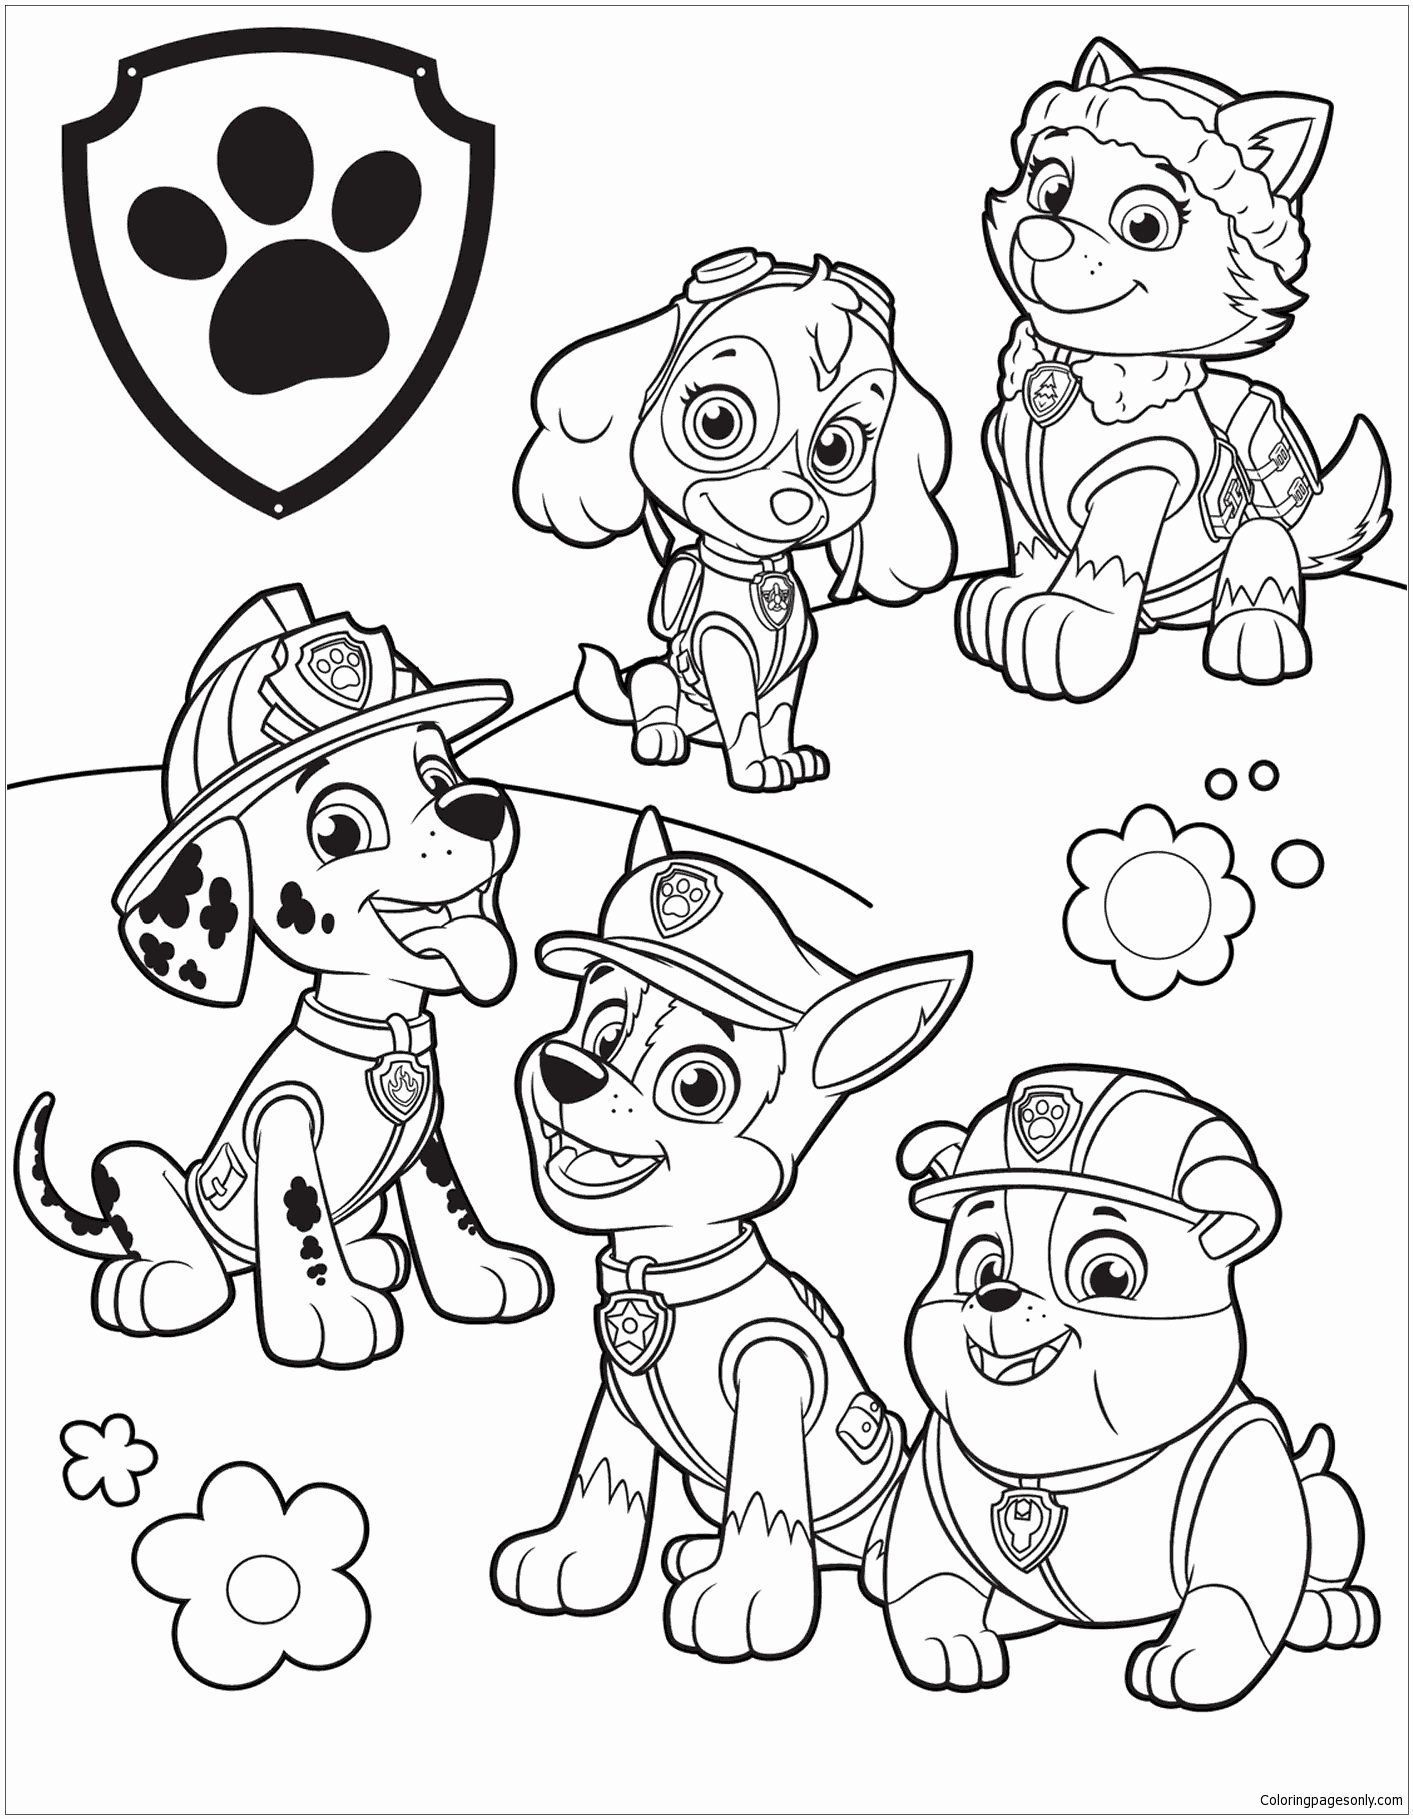 Printable Coloring Pages Paw Patrol Inspirational Paw Patrol 39 Coloring Page Paw Patrol C Paw Patrol Coloring Pages Paw Patrol Coloring Cartoon Coloring Pages